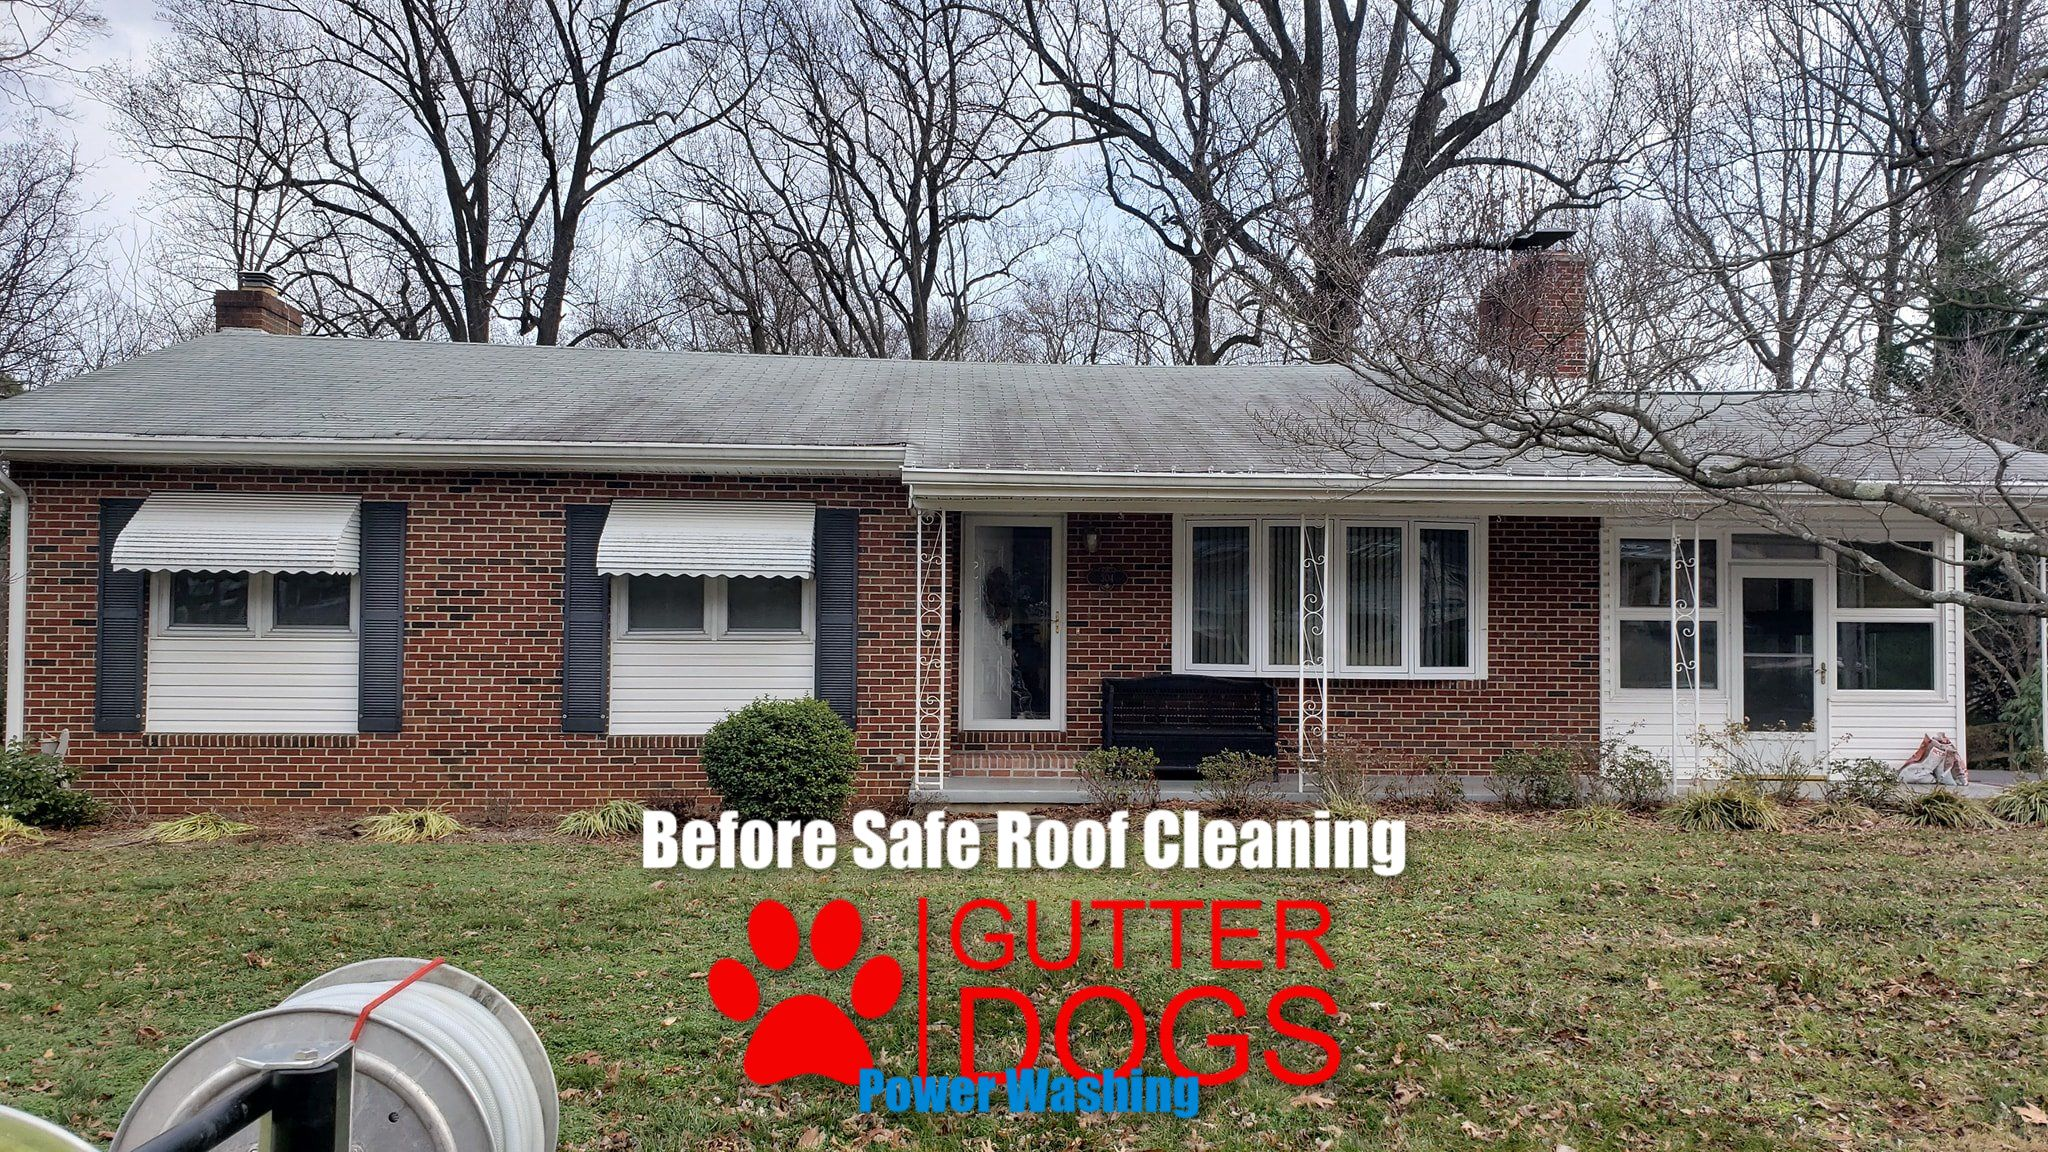 The Best Roof Cleaning Service In Annapolis Maryland Call 240 355